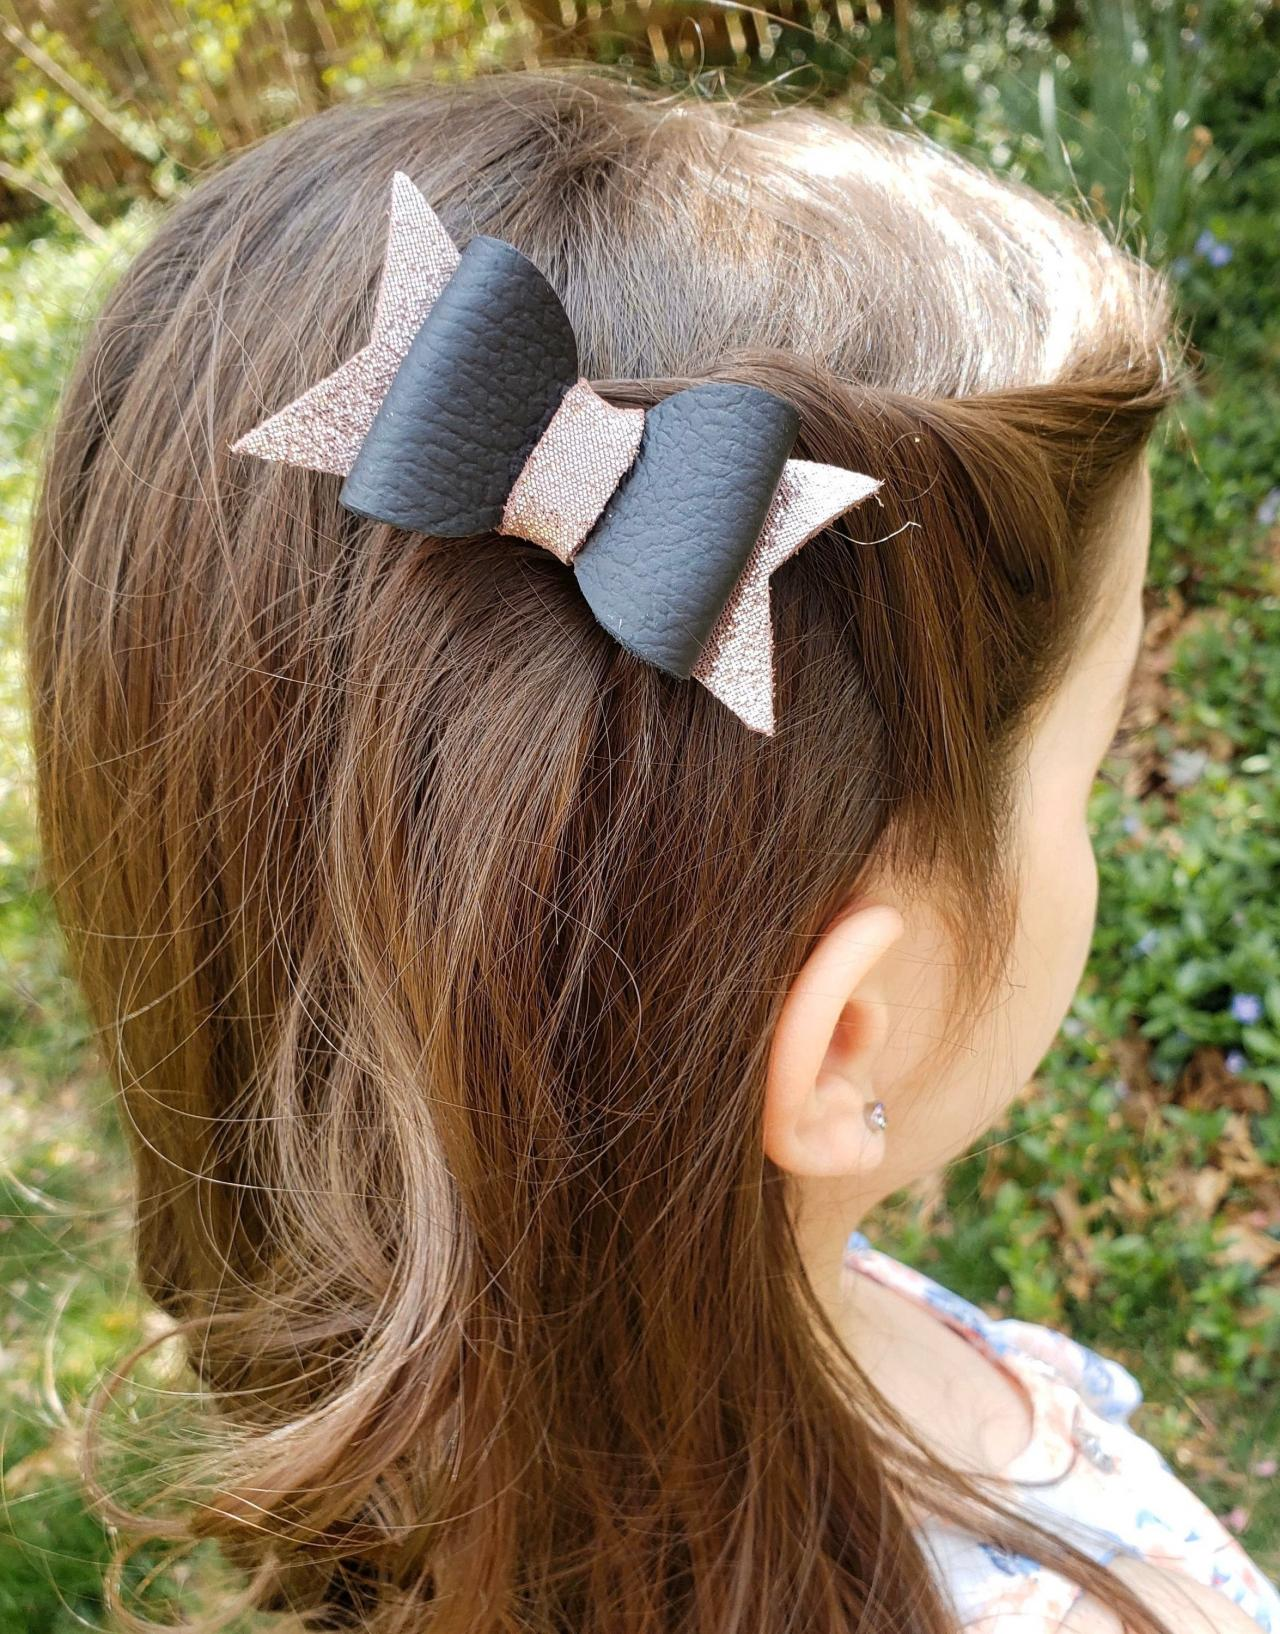 Cute Hair Bow | Leather Hair Bow | Genuine Leather Hair Bow | Toddler Hair Bow | Pigtail Bows | Baby Bow | Leather Hair Clip